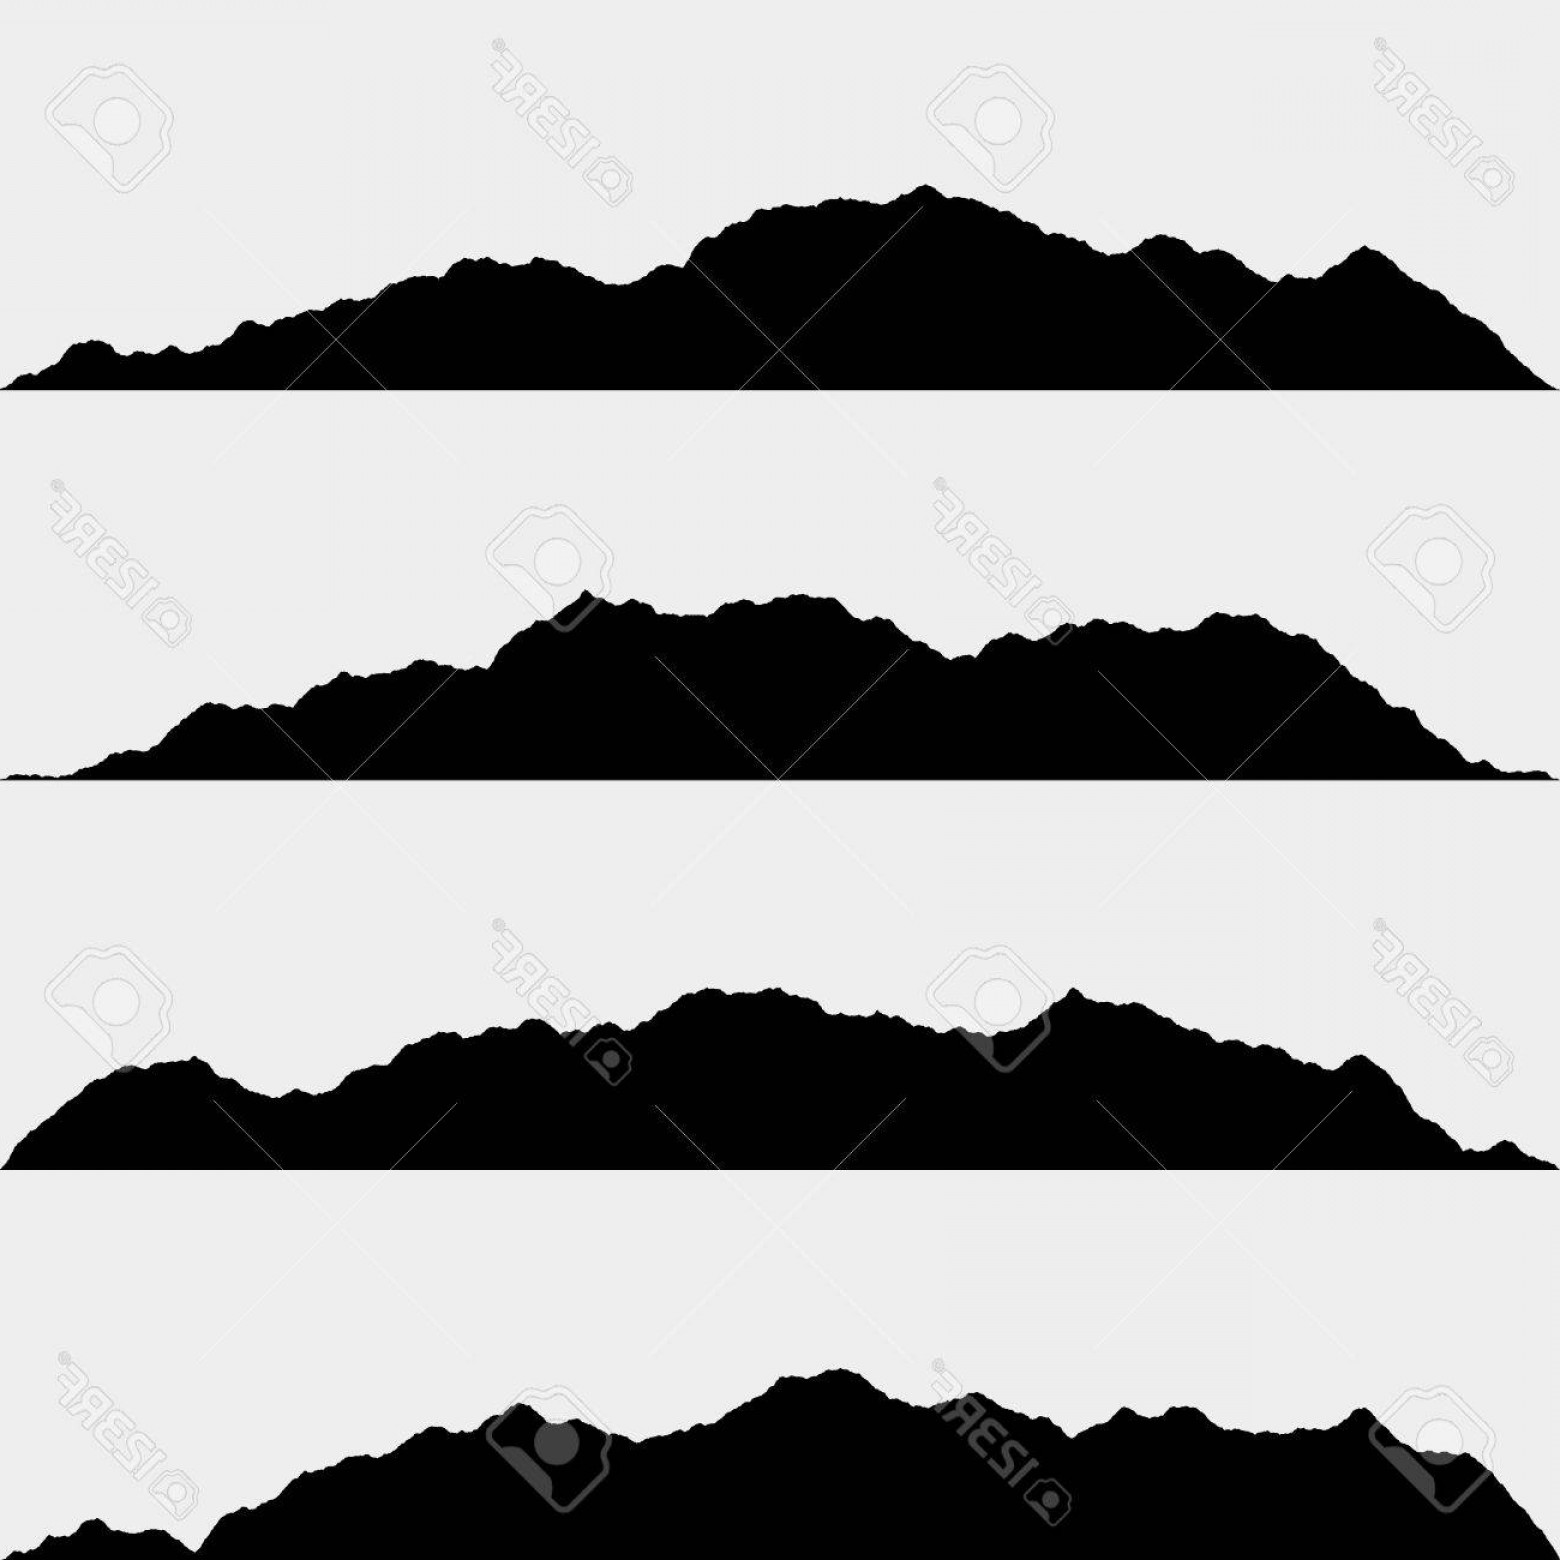 White Mountain Silhouette Vector Free: Photostock Vector Isolated Black Silhouettes Of Mountains On White Vector Illustration